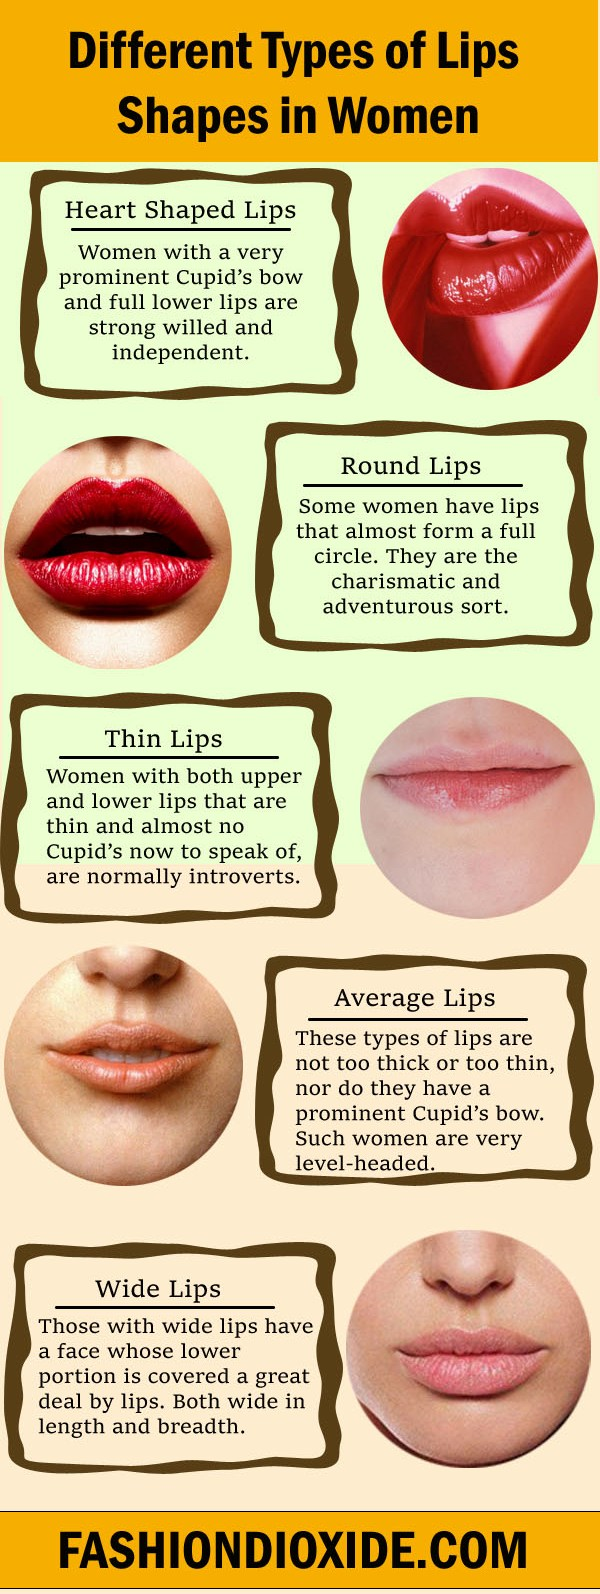 5 Different Types of Lips Shapes in Women